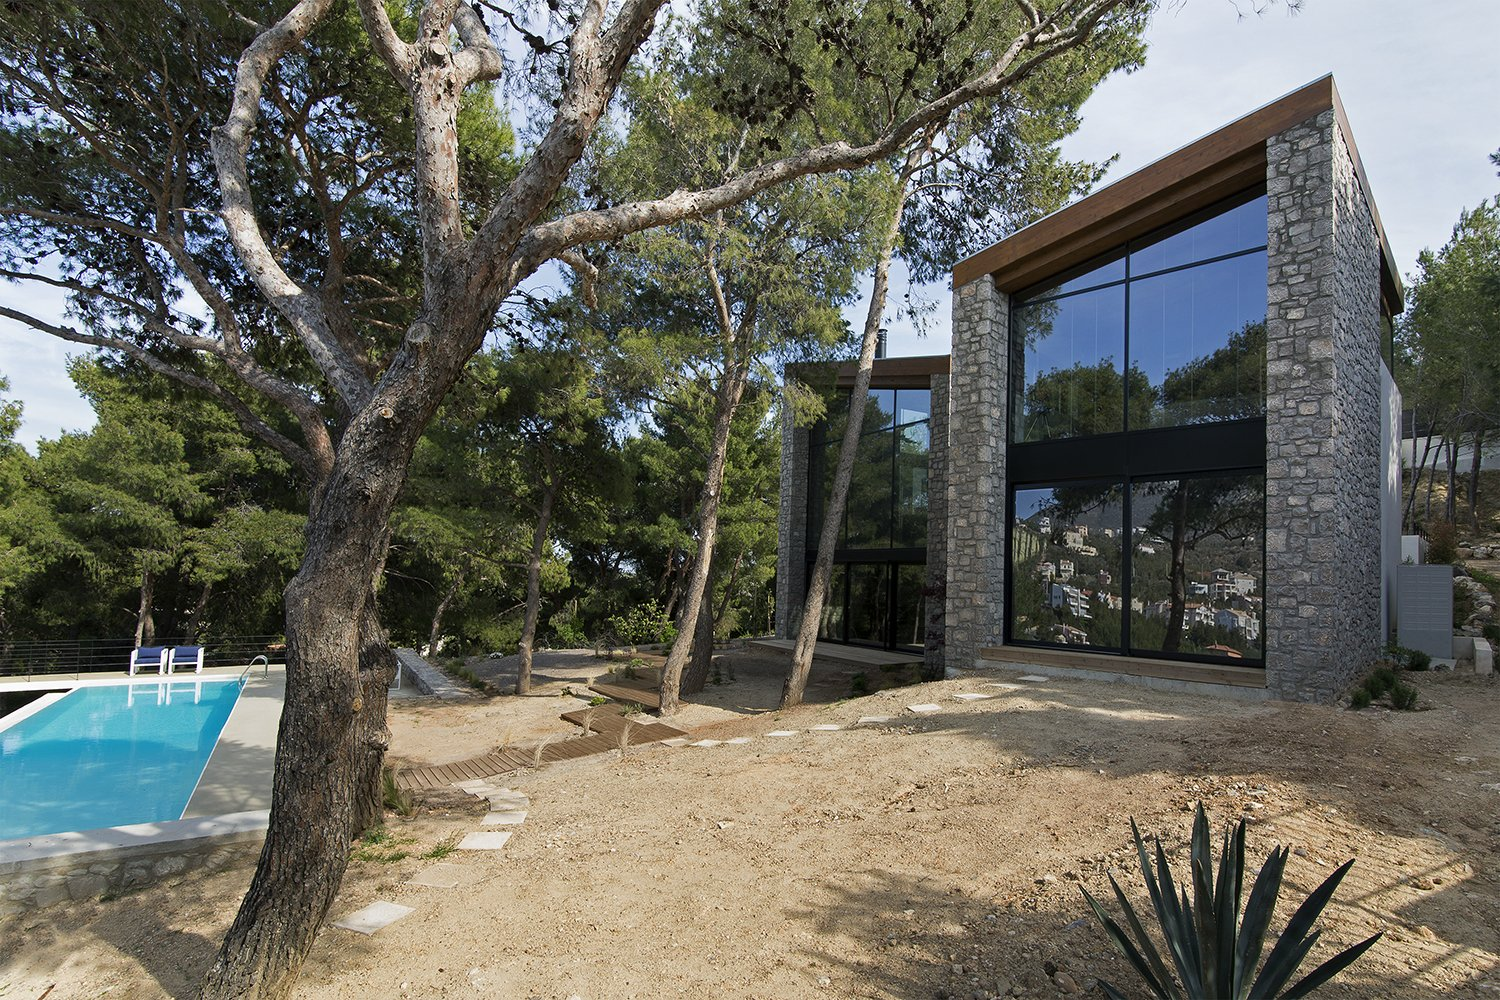 Exterior, Stone Siding Material, Shingles Roof Material, House Building Type, and Wood Siding Material Both facades completely open up through large glazing surfaces to the view of the pines trees and the hills beyond  The Wedge House